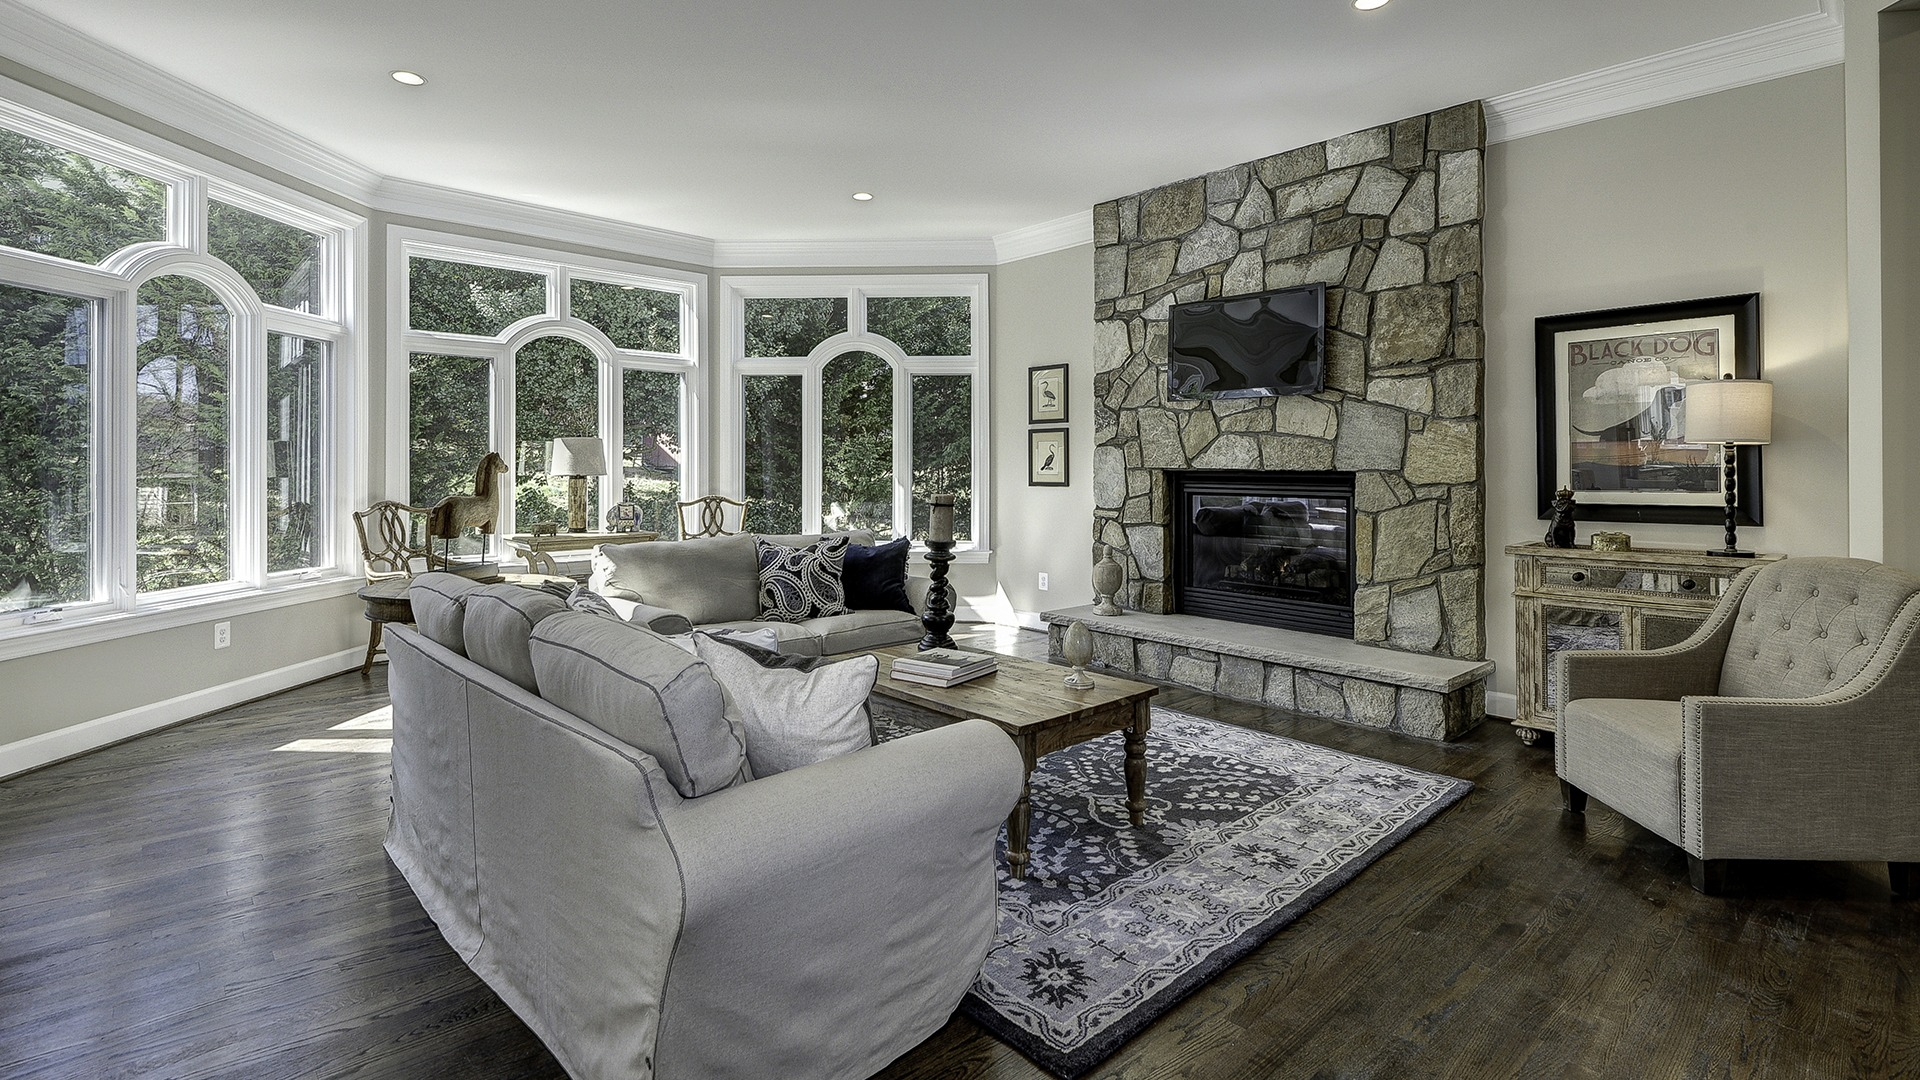 The Family Room in Carper Street, a Gulick | One custom home.